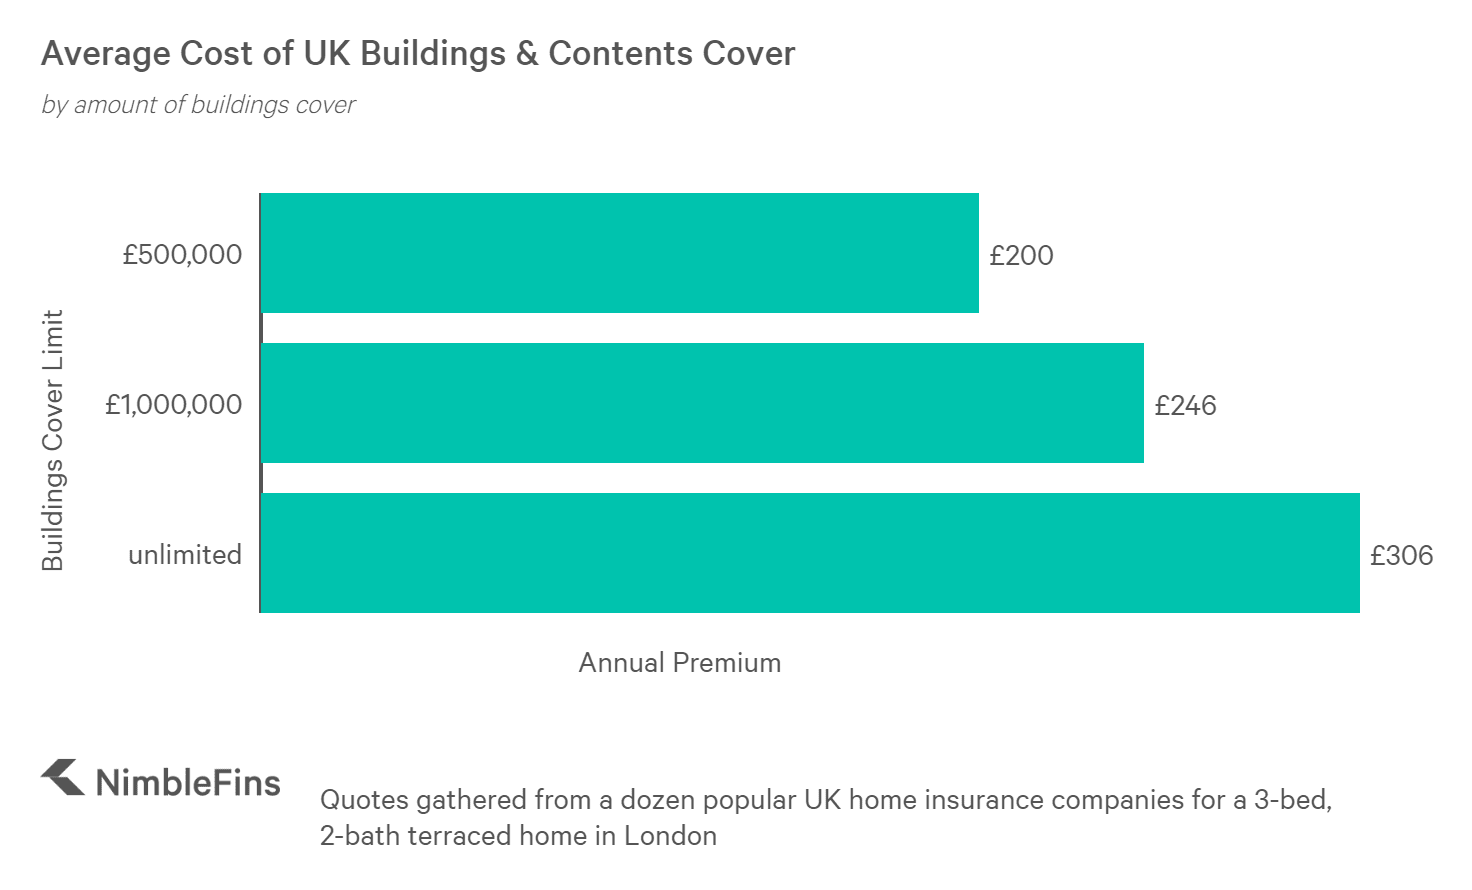 chart showing average home insurance premium by buildings cover amount